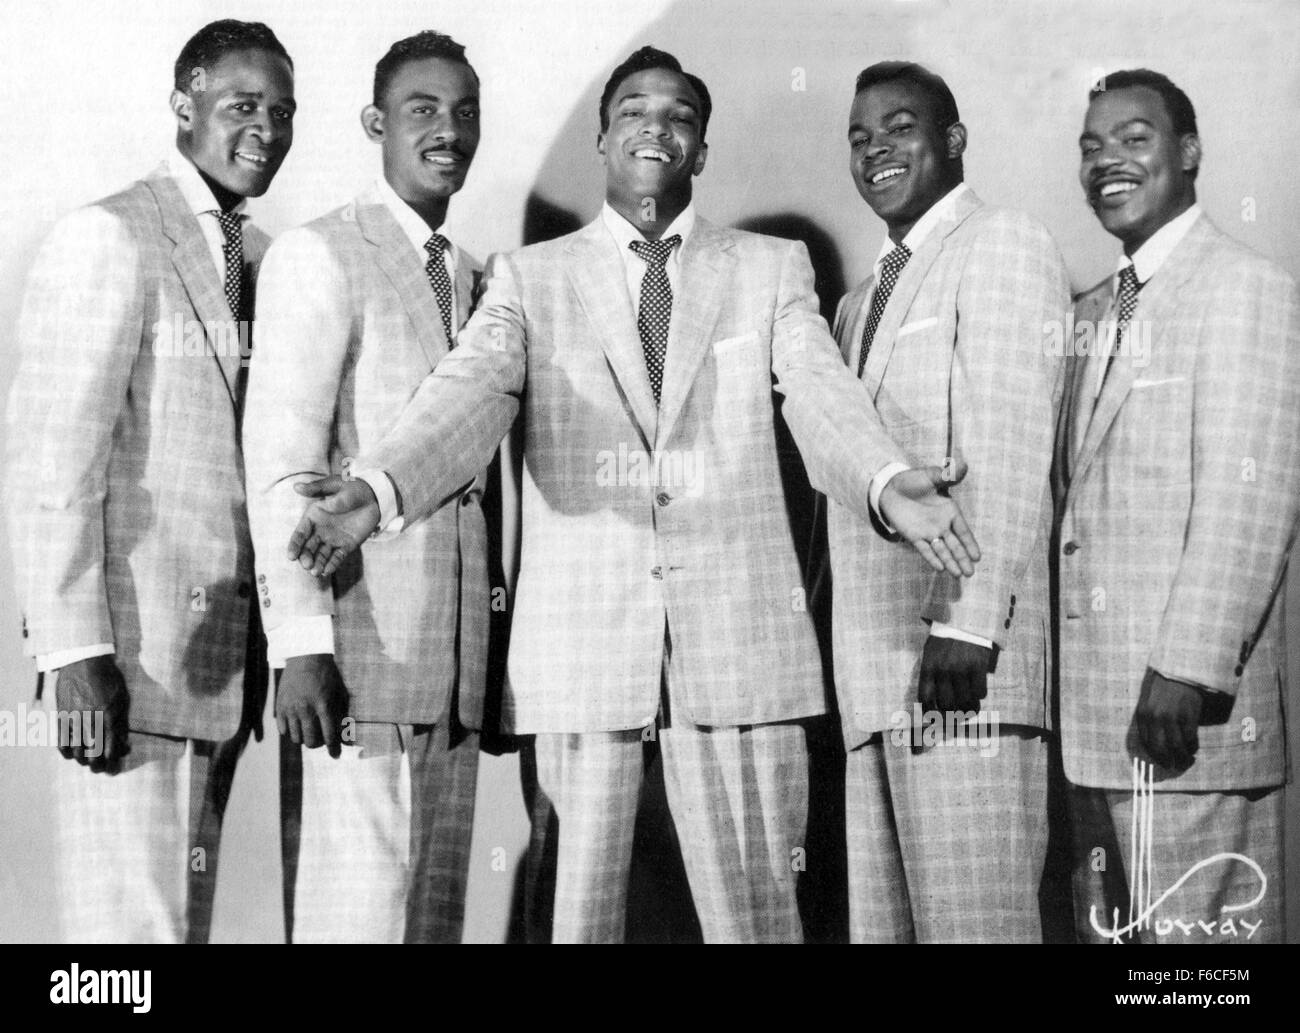 Image result for clyde mcphatter drifters images